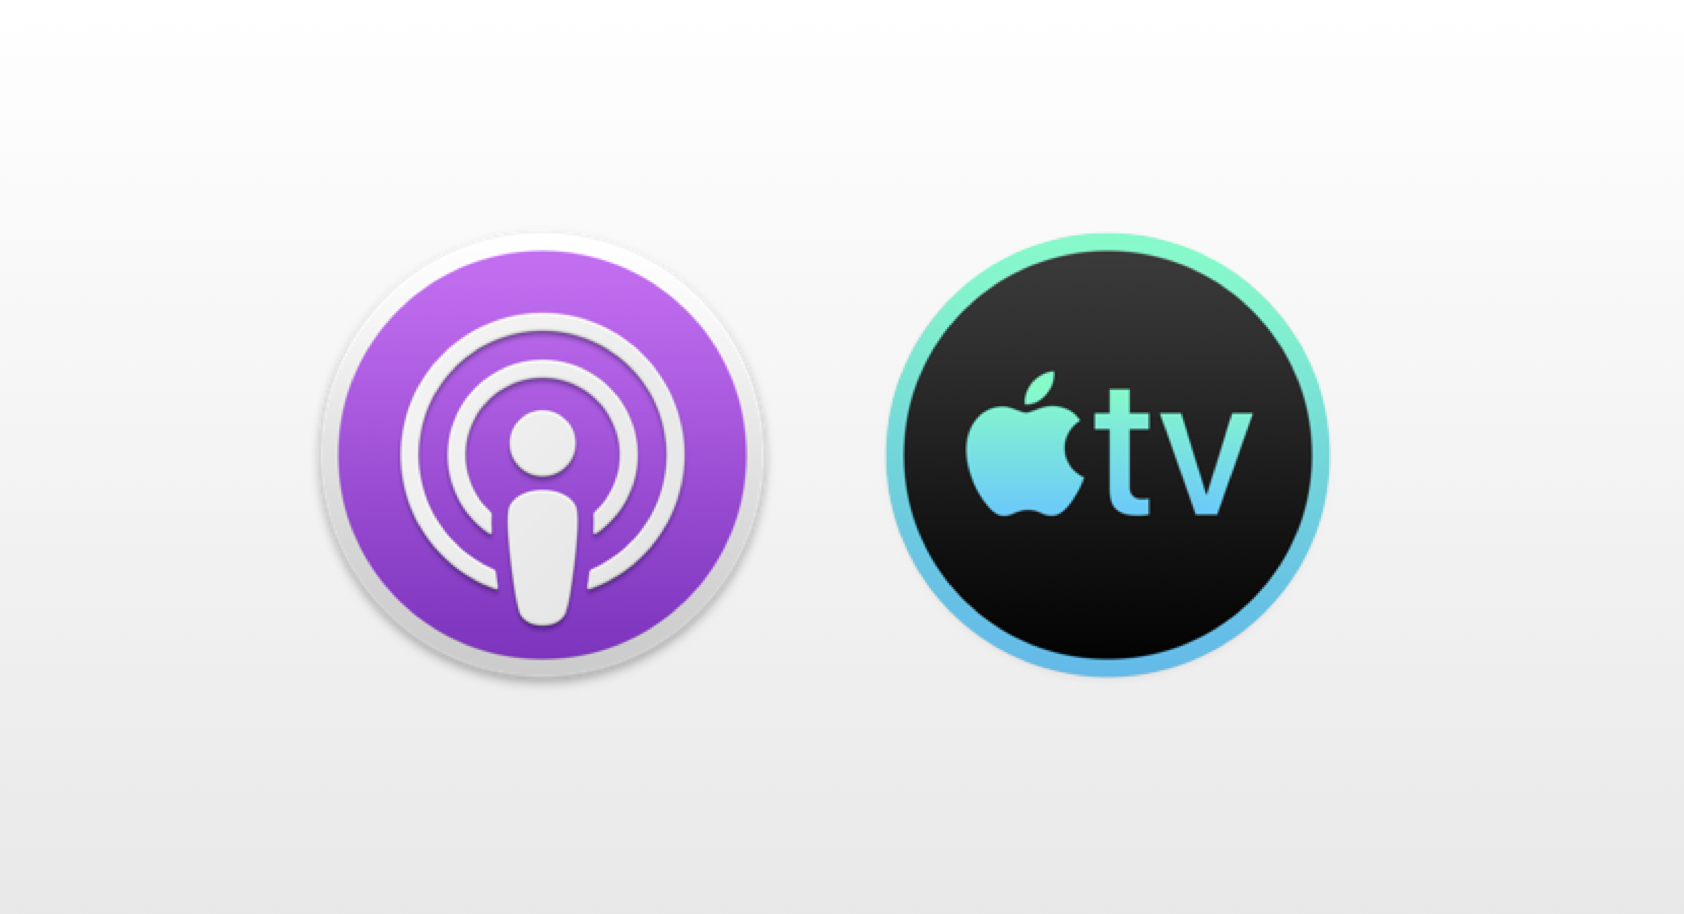 Podcasts en TV-app icoontjes in macOS 10.15.